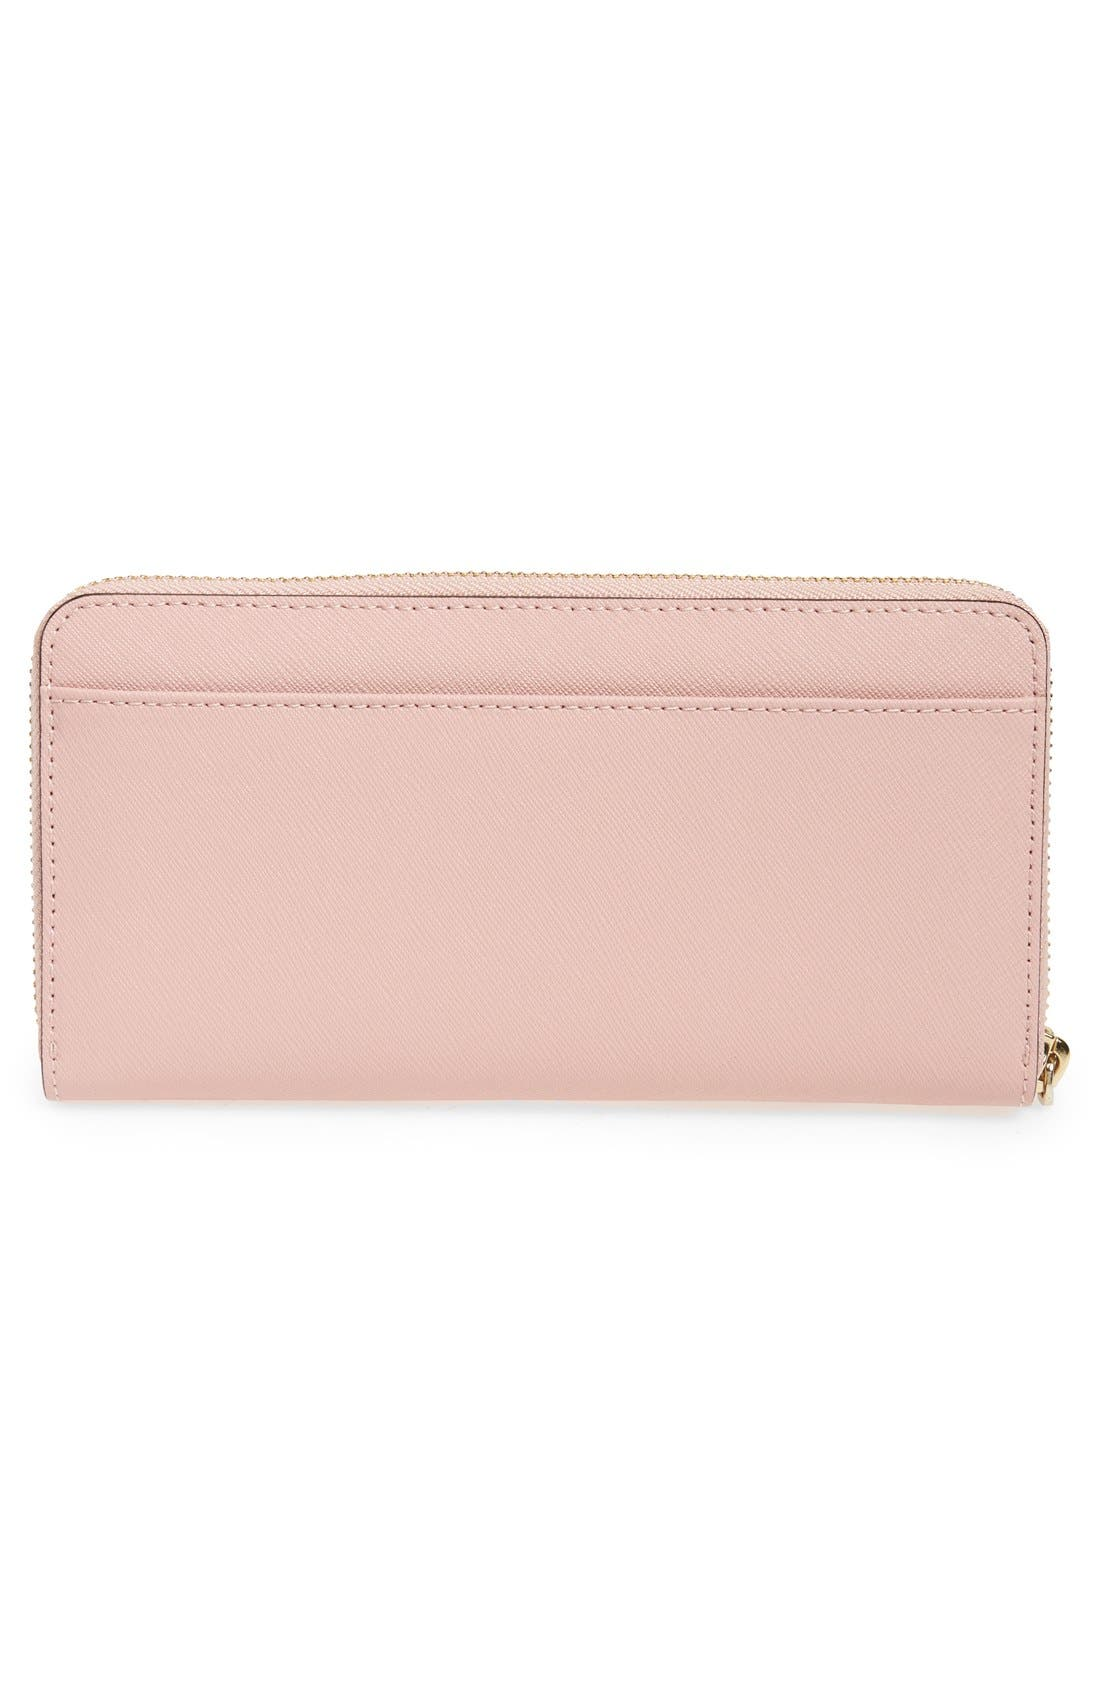 'cameron street - lacey' leather wallet,                             Alternate thumbnail 78, color,